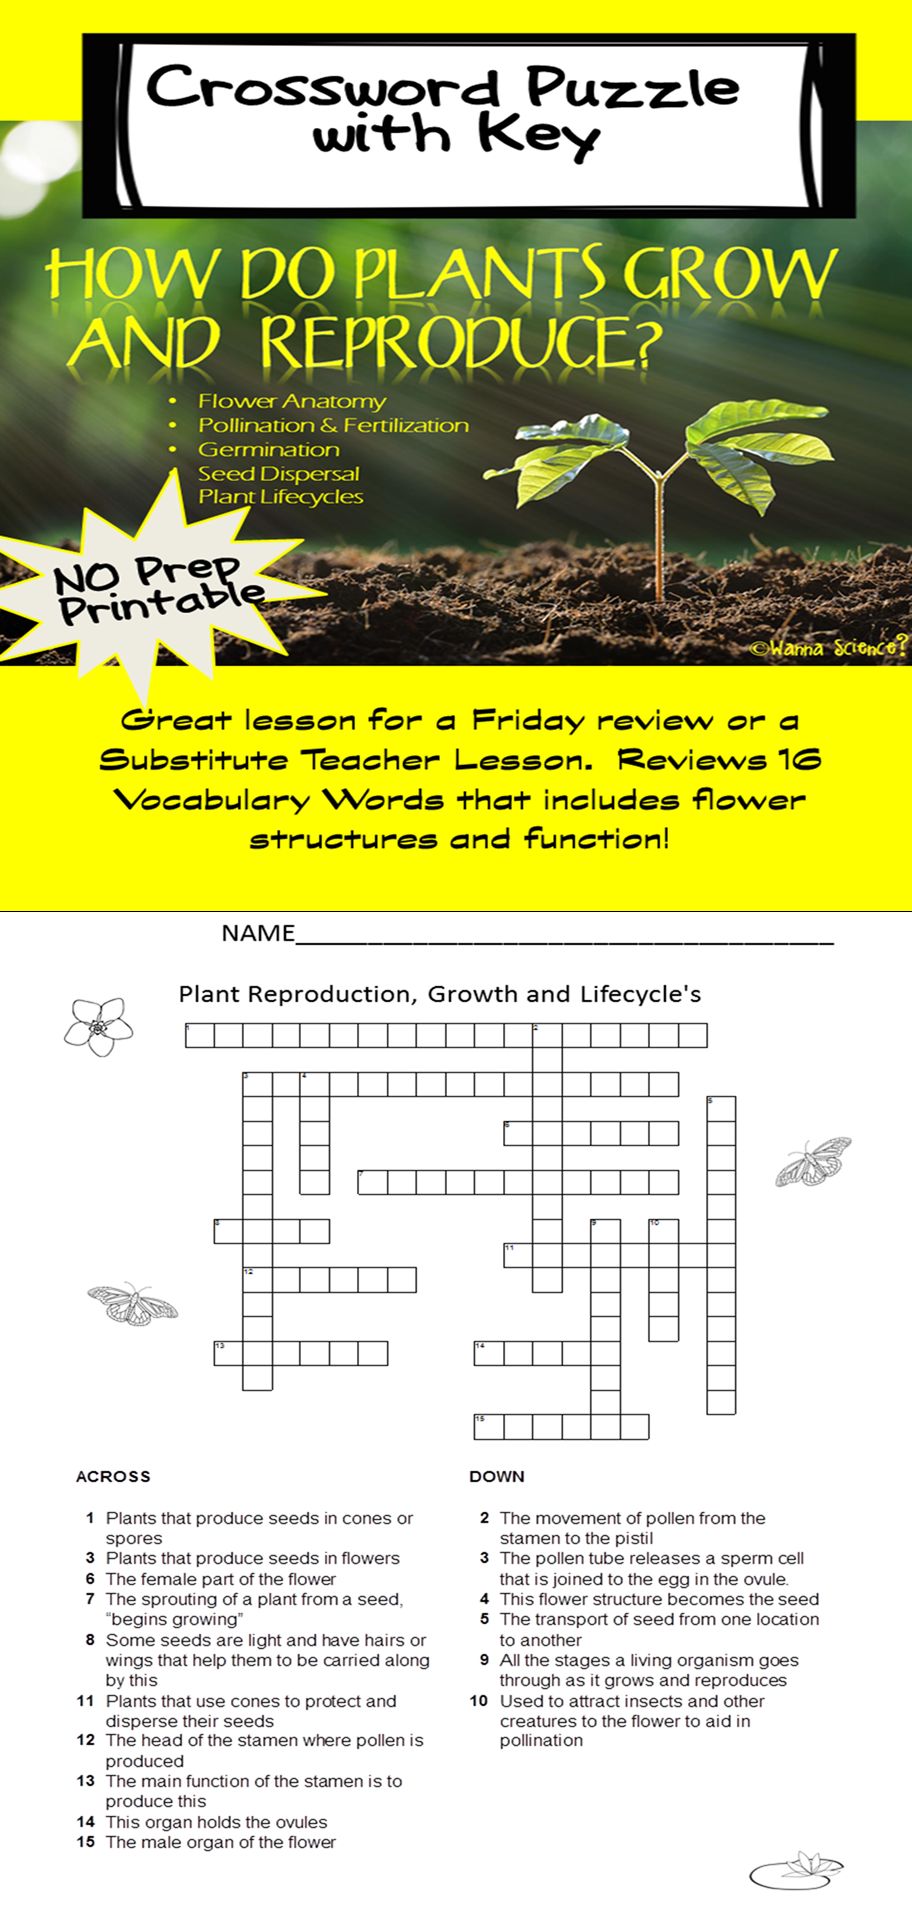 Plant Growth, Reproduction and Life Cycle Crossword Puzzle and Key ...